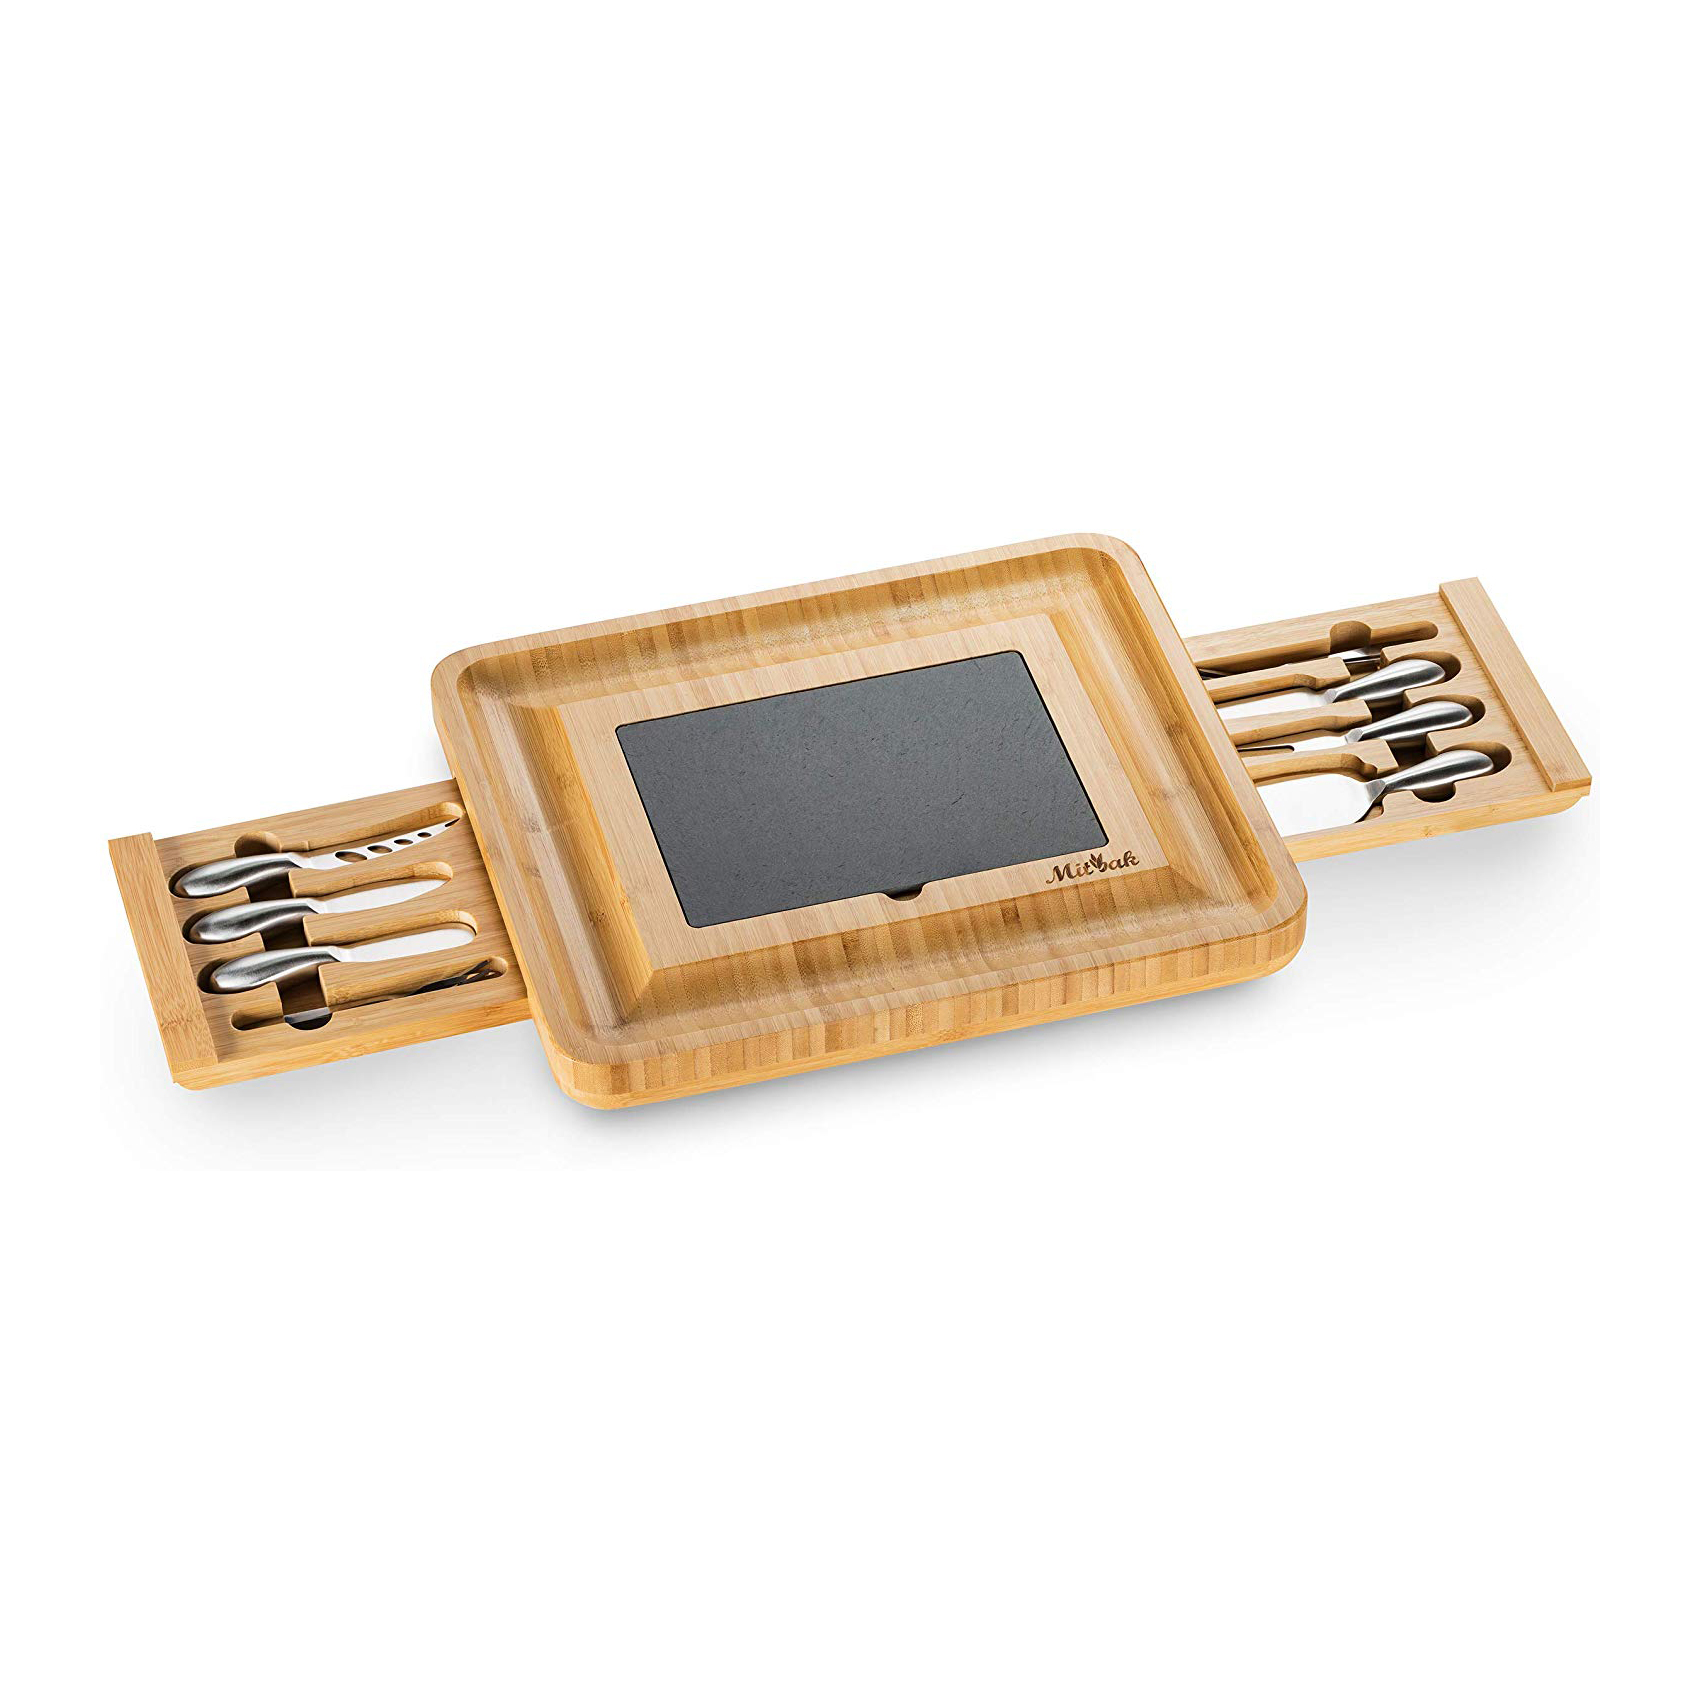 Cheese Cutting Board and Charcuterie Set